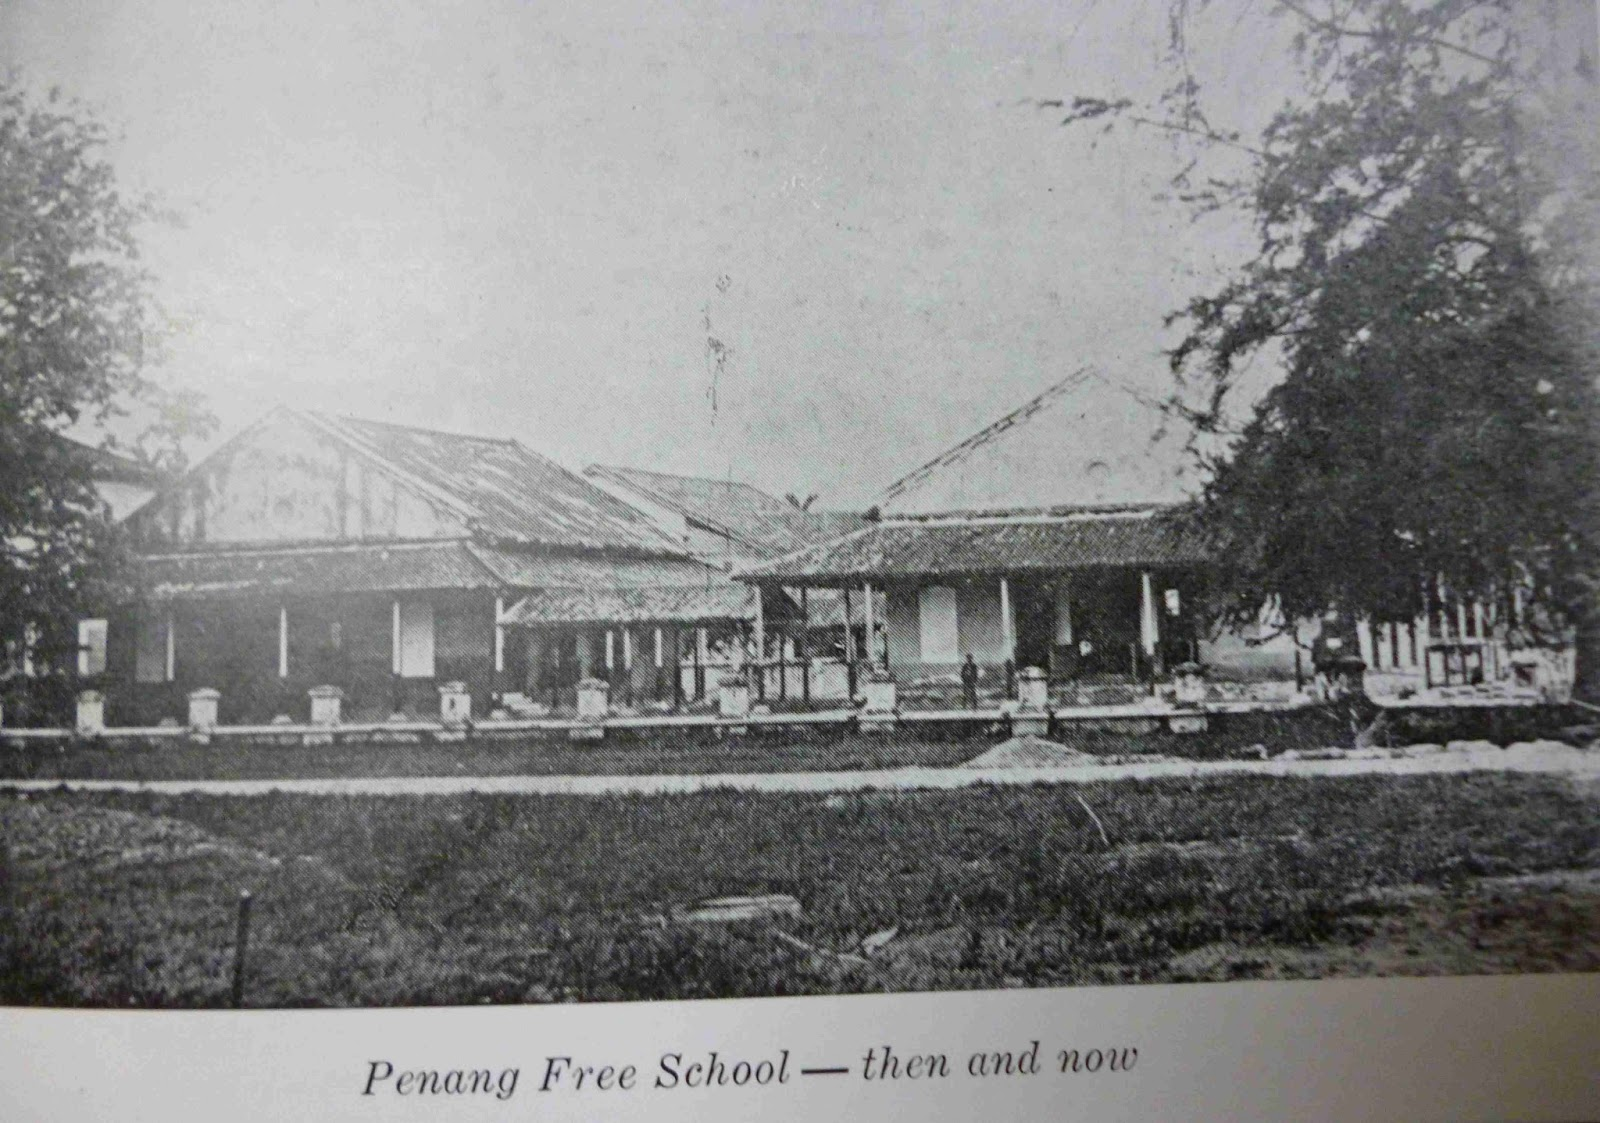 Penang Free School, old venue in 1816.